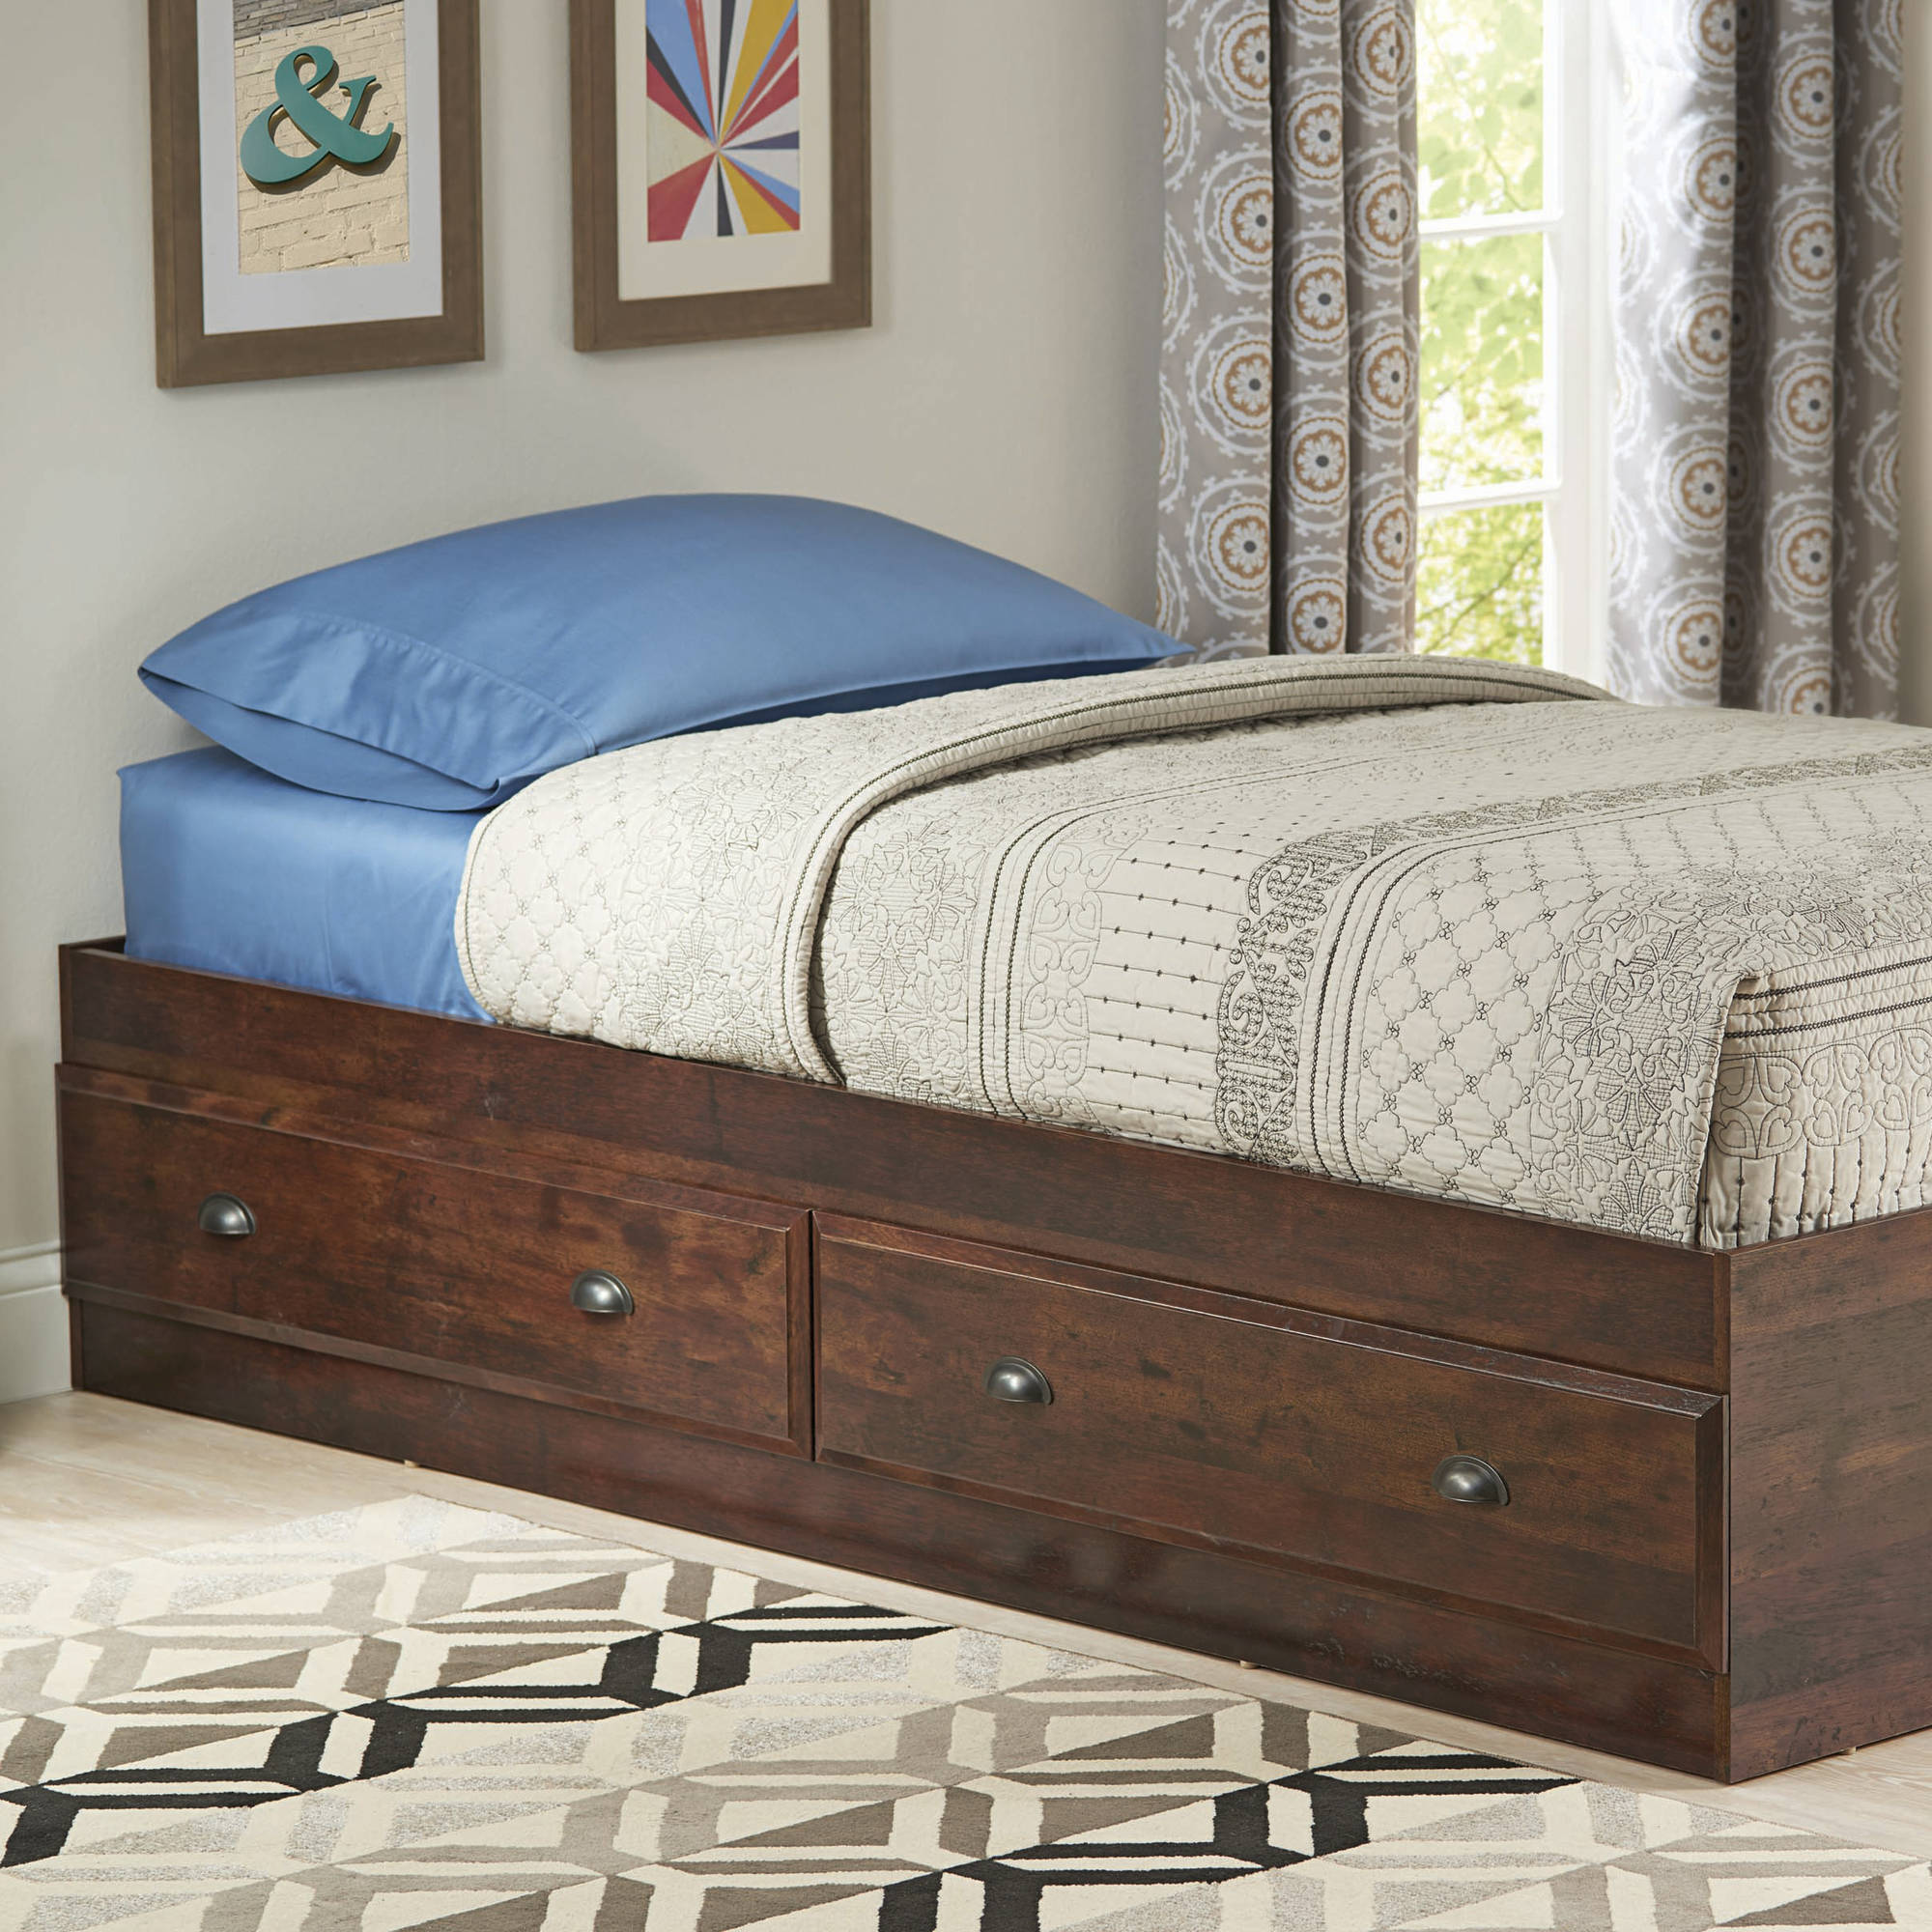 Better Homes and Gardens Leighton Mates Bed, Rustic Cherry Finish